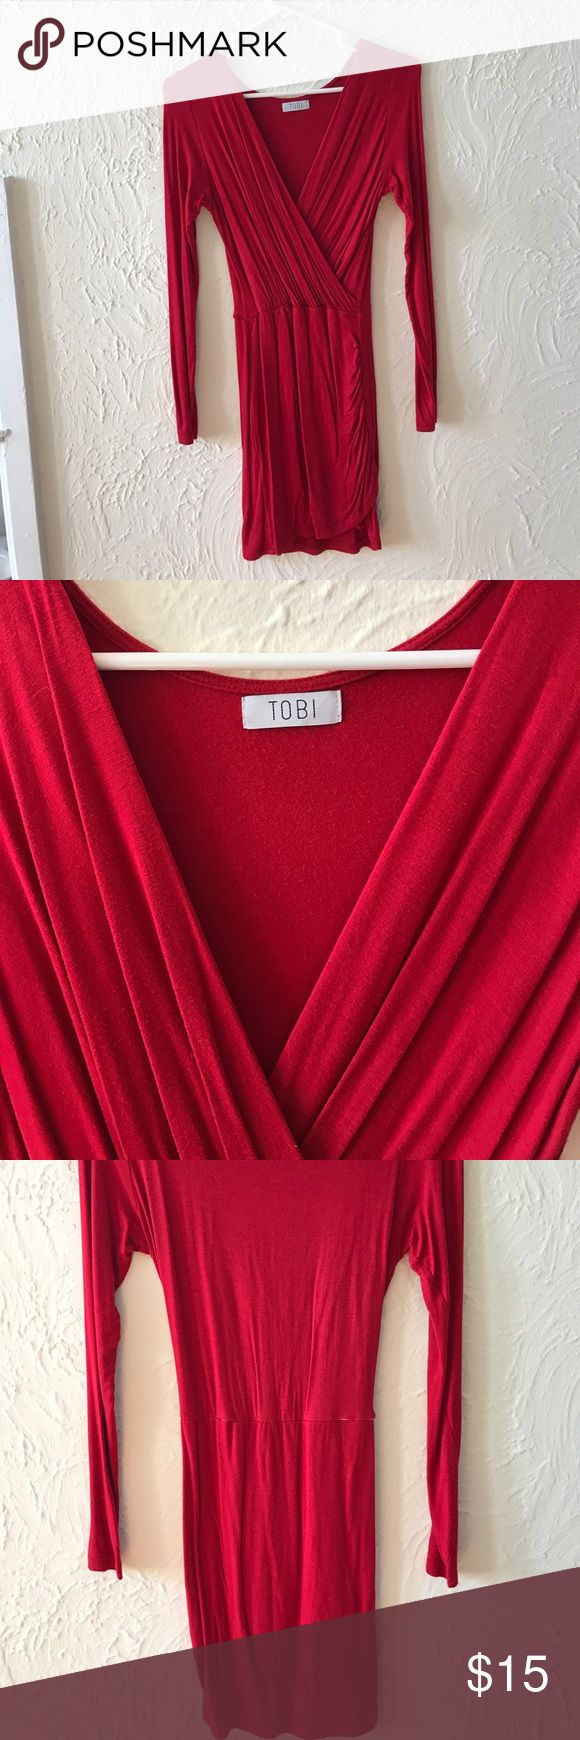 tobi red party dress This is such a great night out dress! I've always received tons of compliments when I have worn it. As you can see in one of the pics the threading has came undone and exposed some of the elastic. It doesn't affect the dress in any way in my opinion. Tobi Dresses Long Sleeve